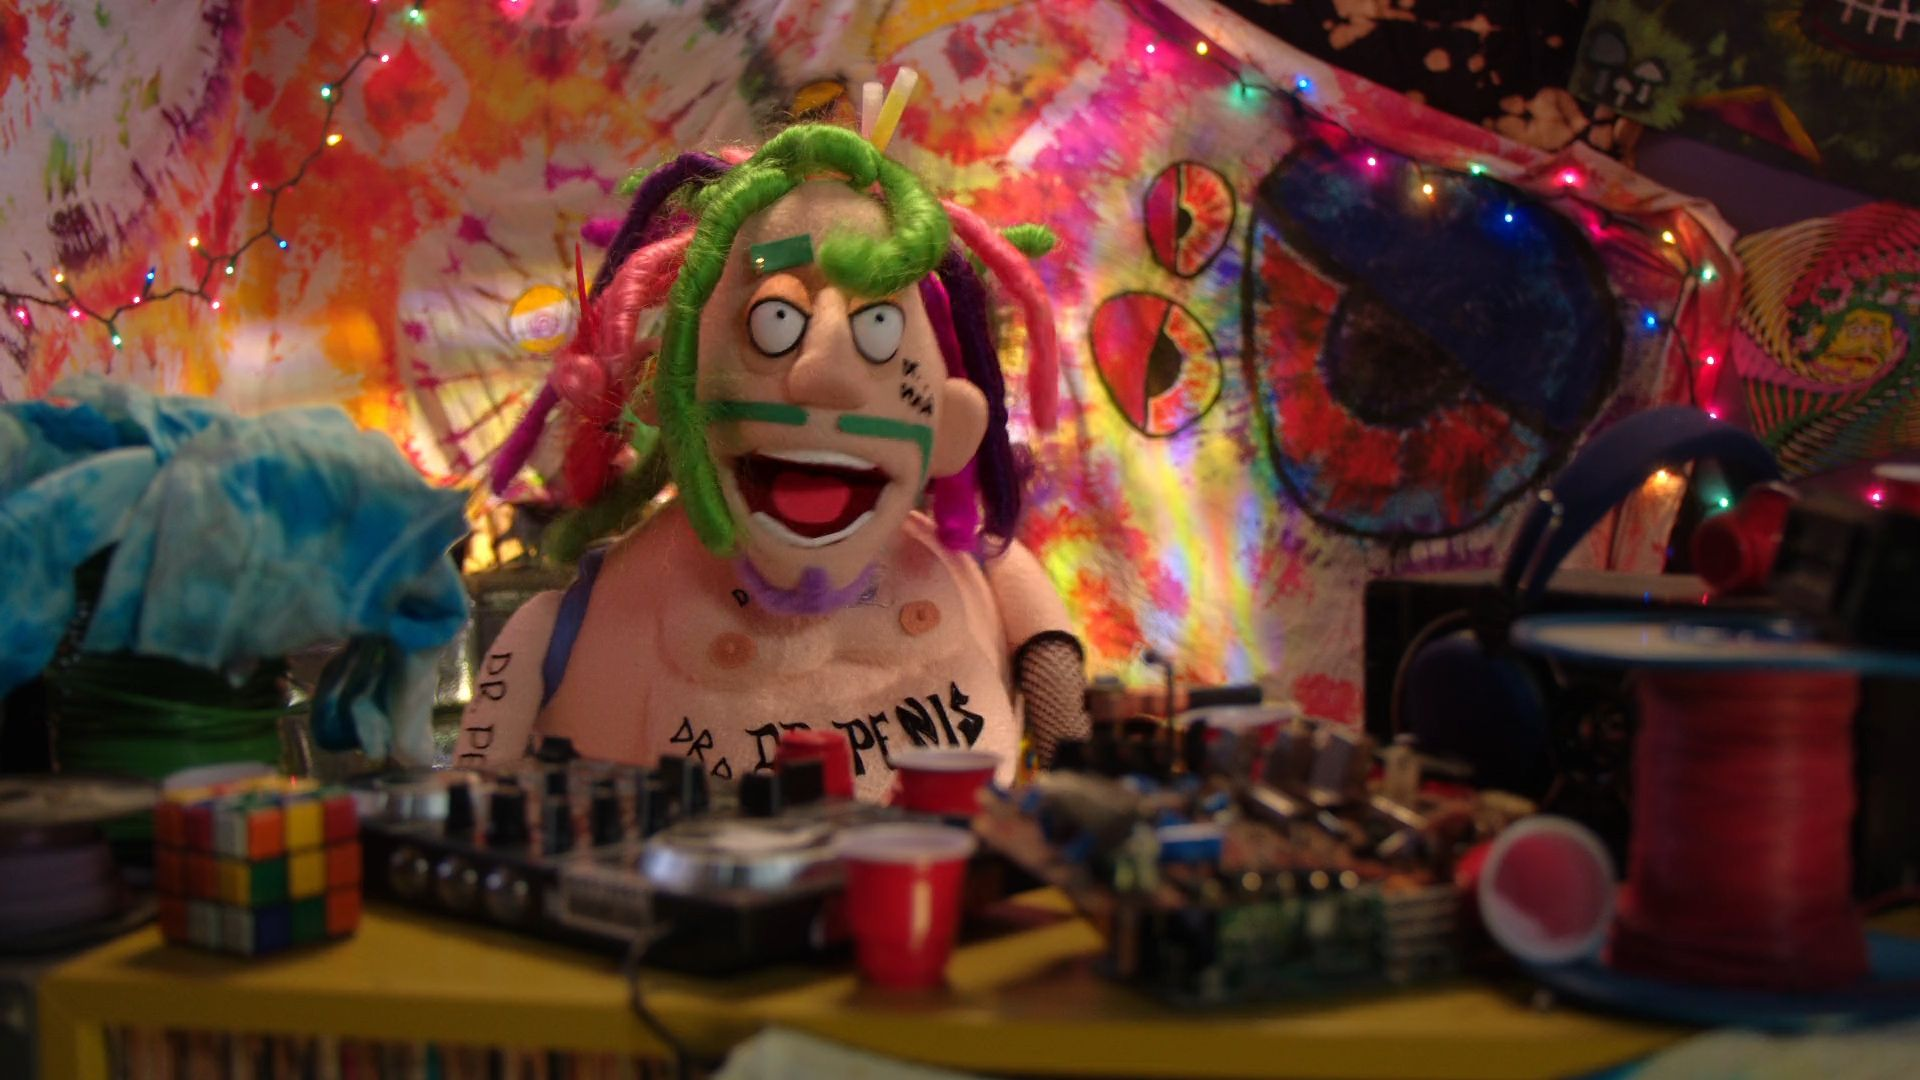 Crank Yankers Season 5 Ep 2 Jimmy Kimmel Kathy Griffin Jeff Ross Full Episode Comedy Central Stream cartoons crank yankers episode 30 jimmy kimmel & kevin nealon. crank yankers season 5 ep 2 jimmy